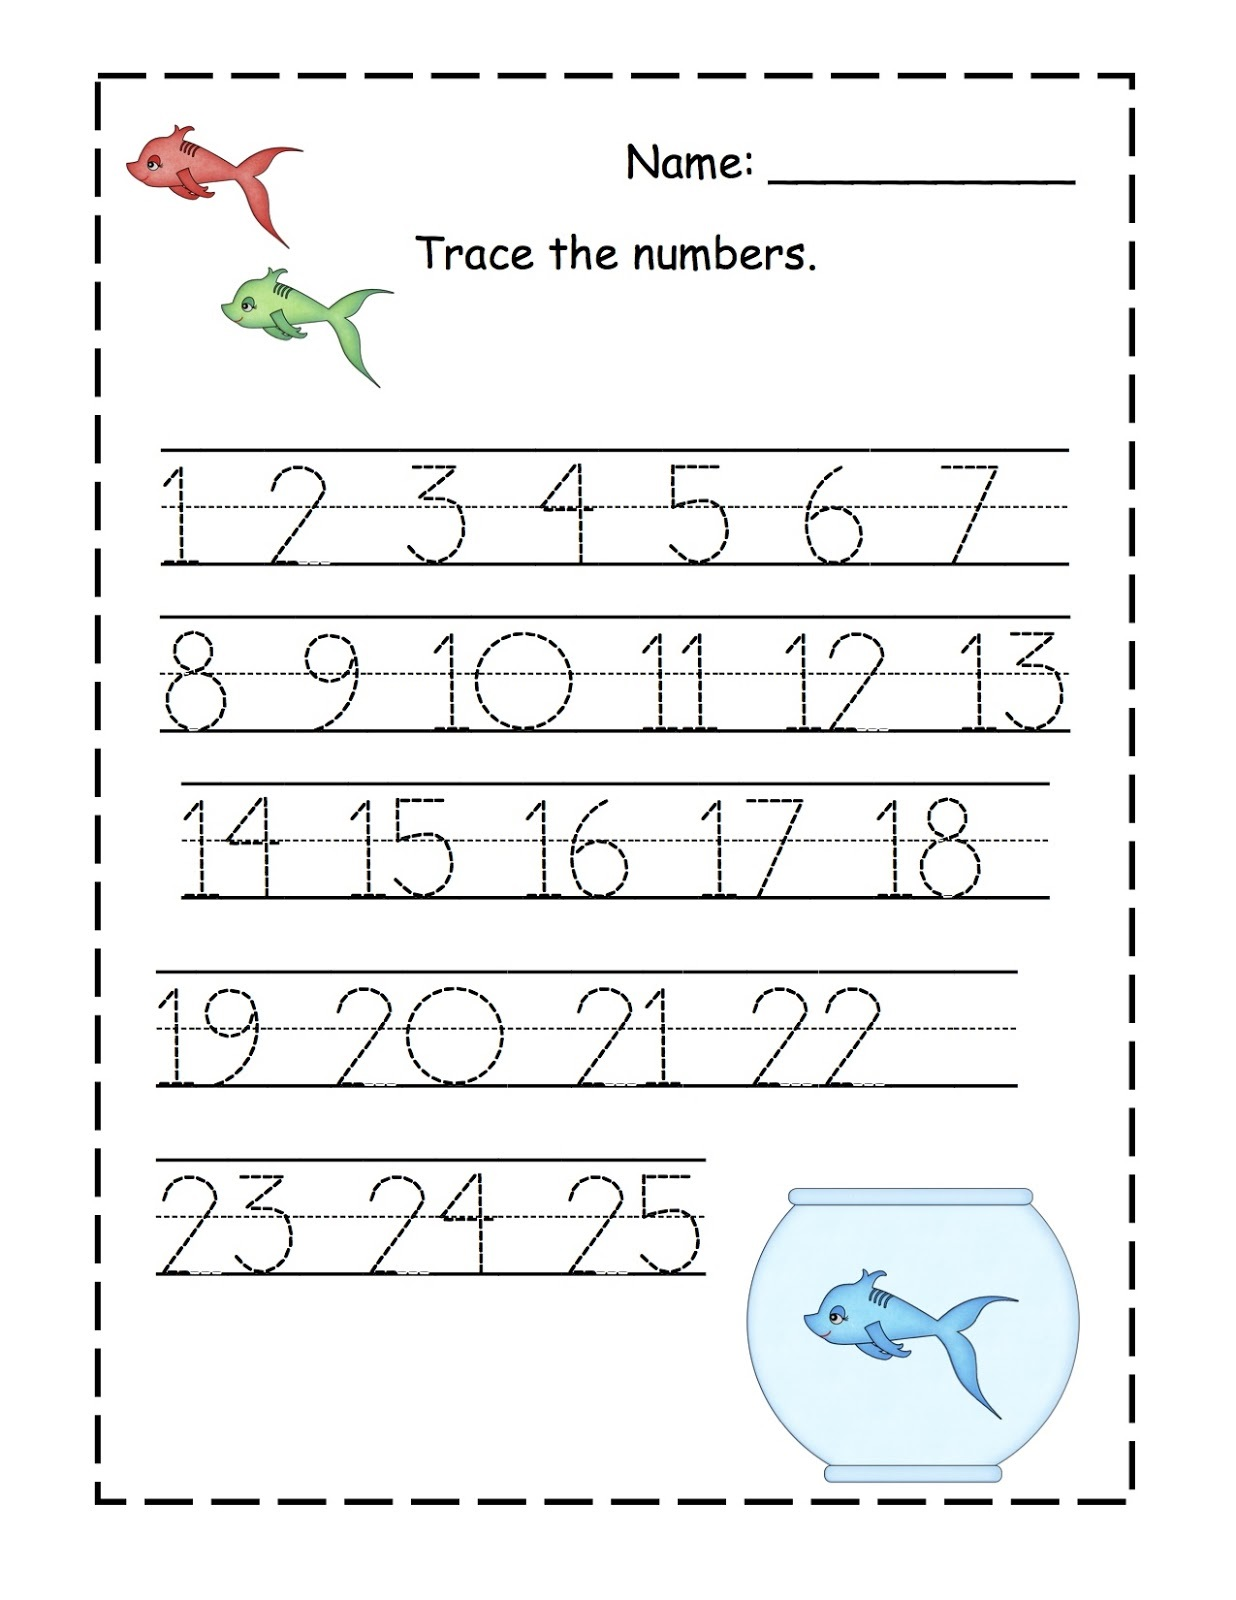 Free Worksheet Free Comprehension Worksheets For Grade 1 free comprehension worksheets for grade 4 abitlikethis math coloring furthermore dice addition worksheets